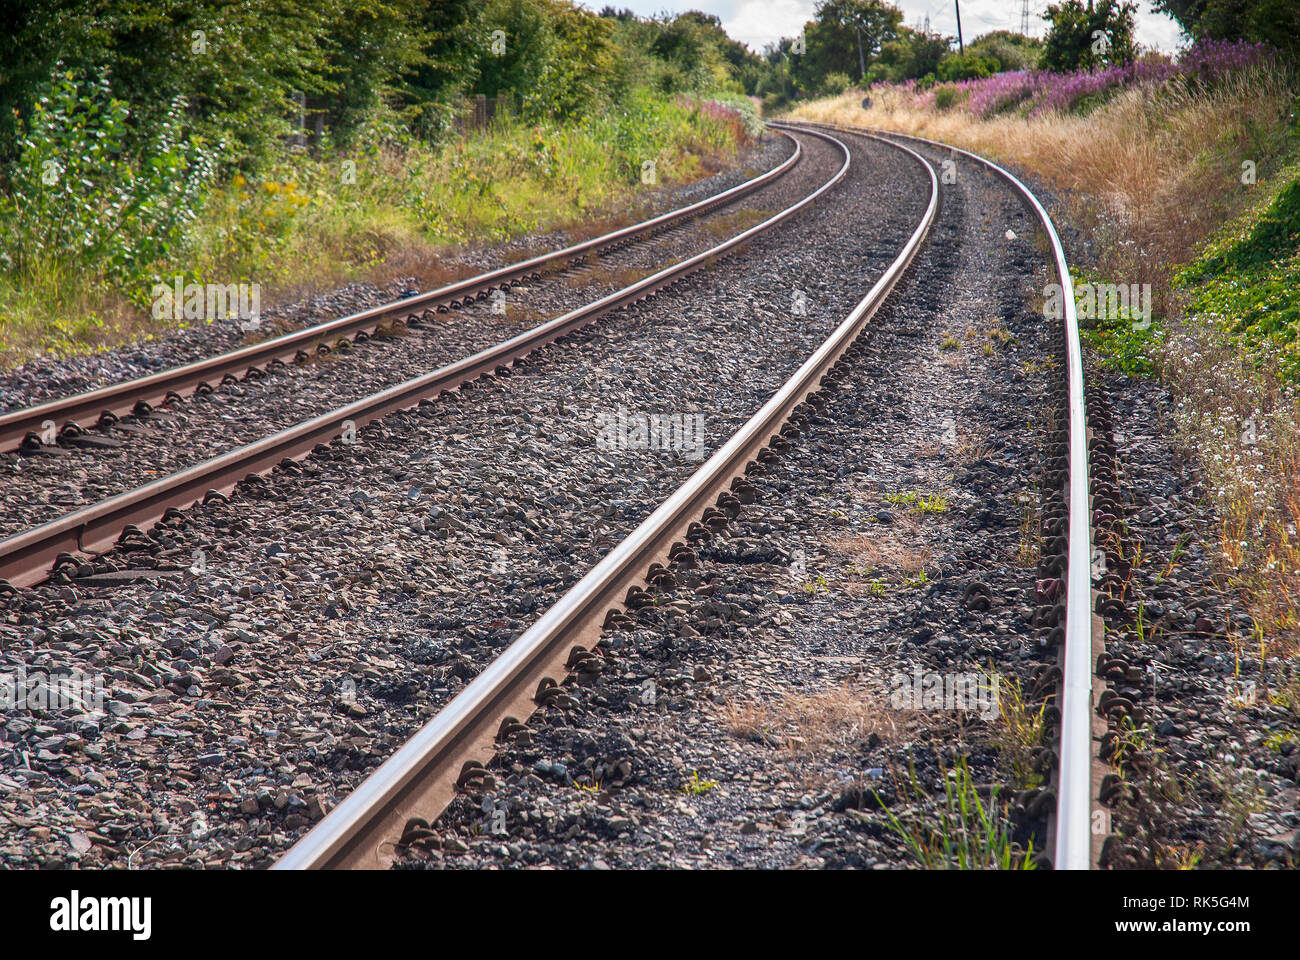 Curved railway lines - Stock Image